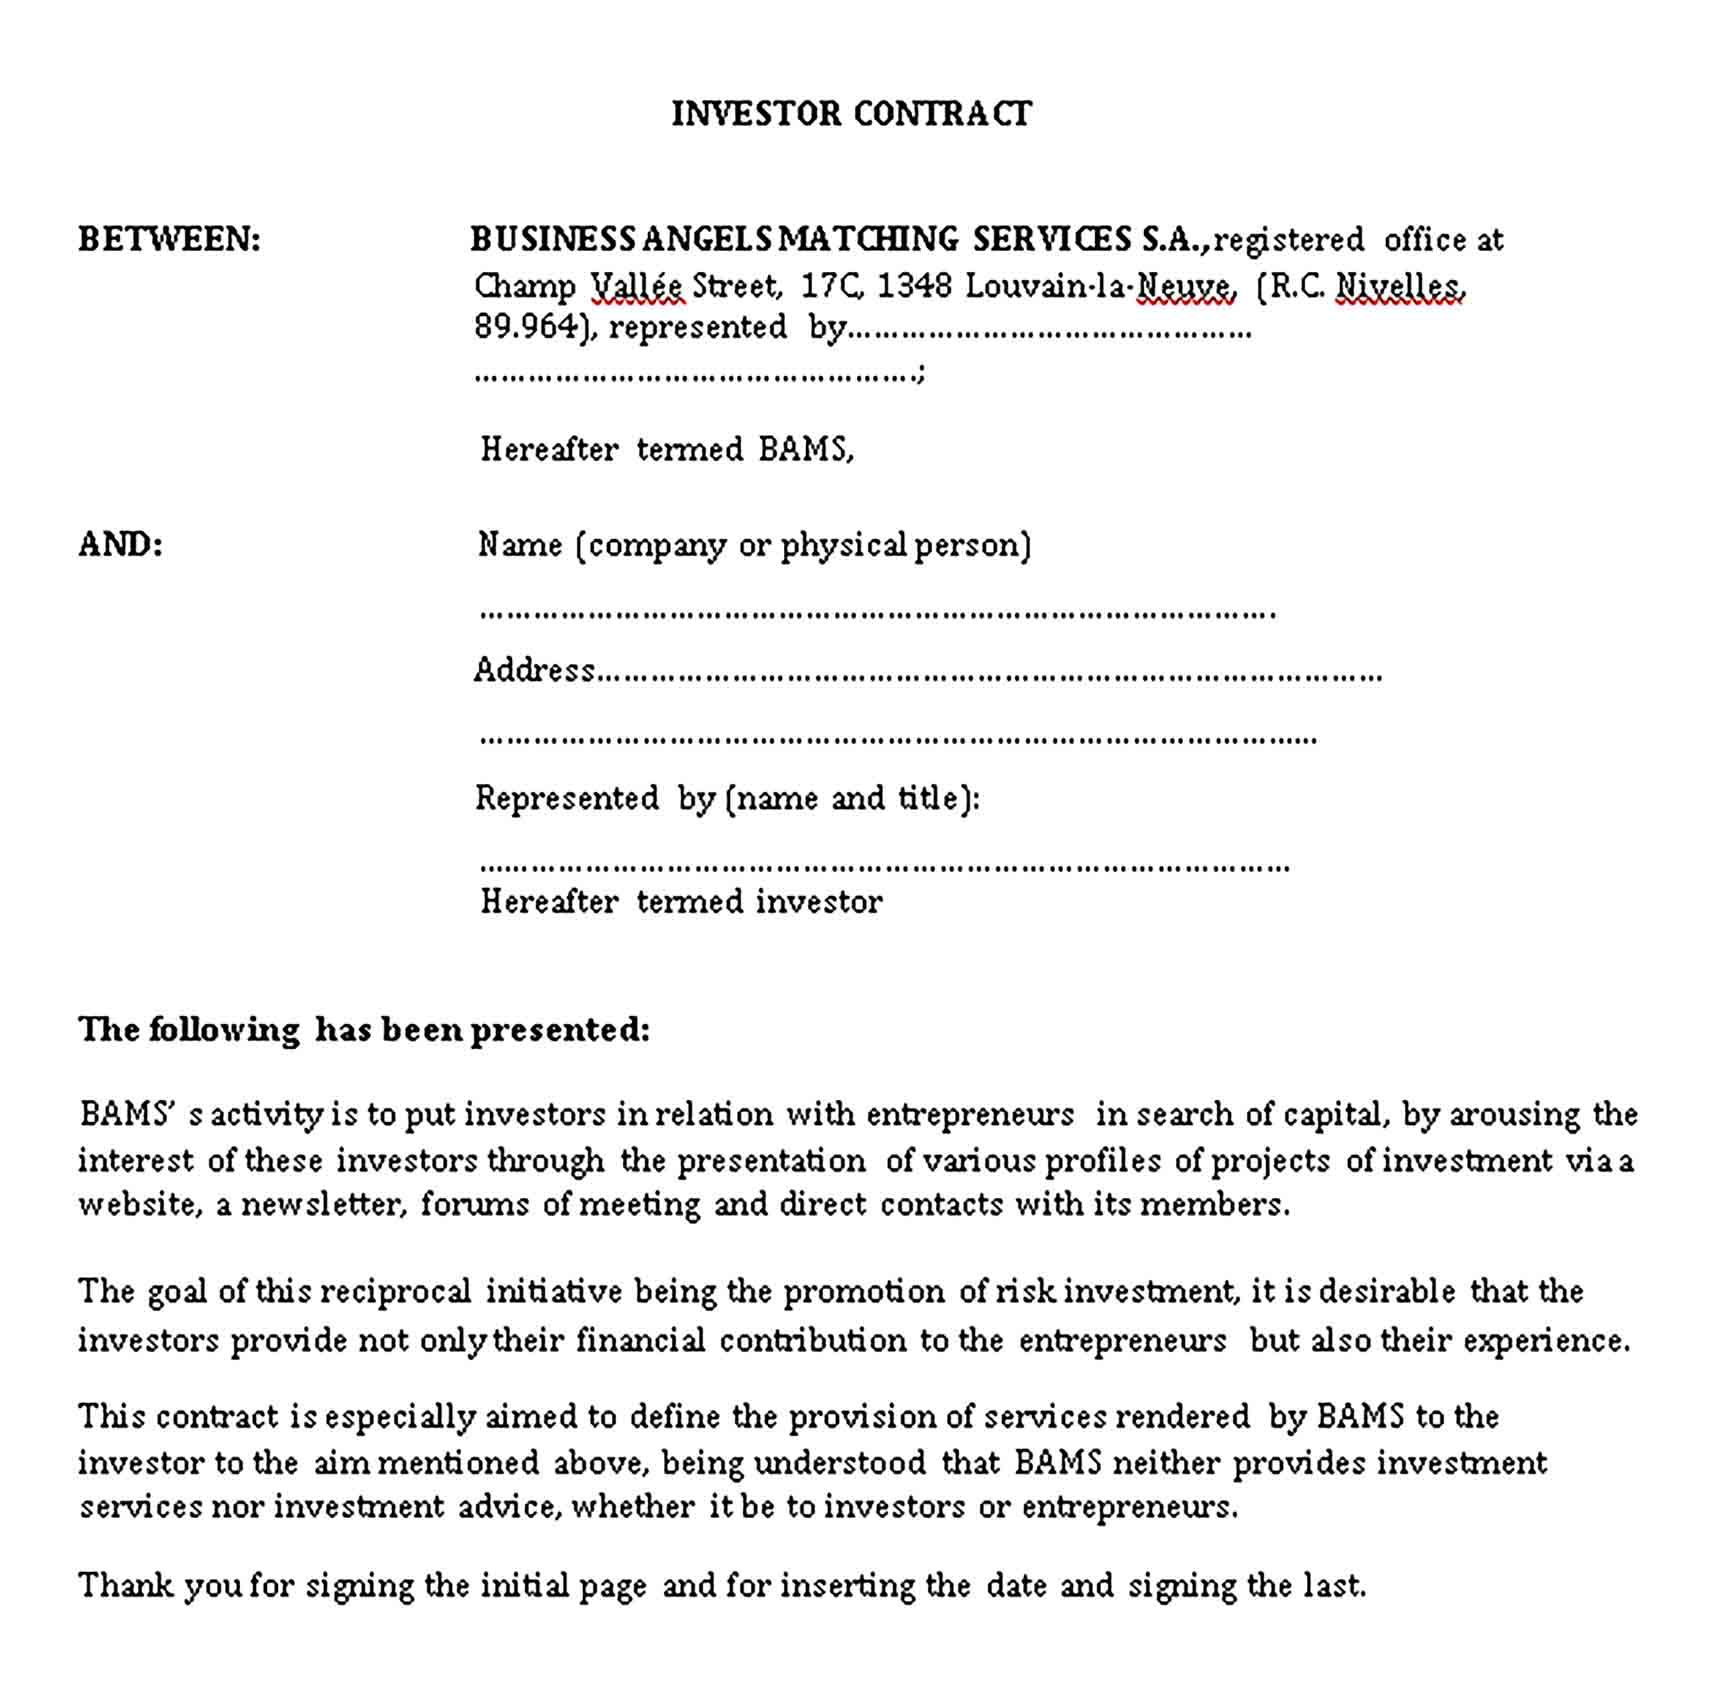 Sample Investment Agreement Template Investing Business Investment Contract Agreement